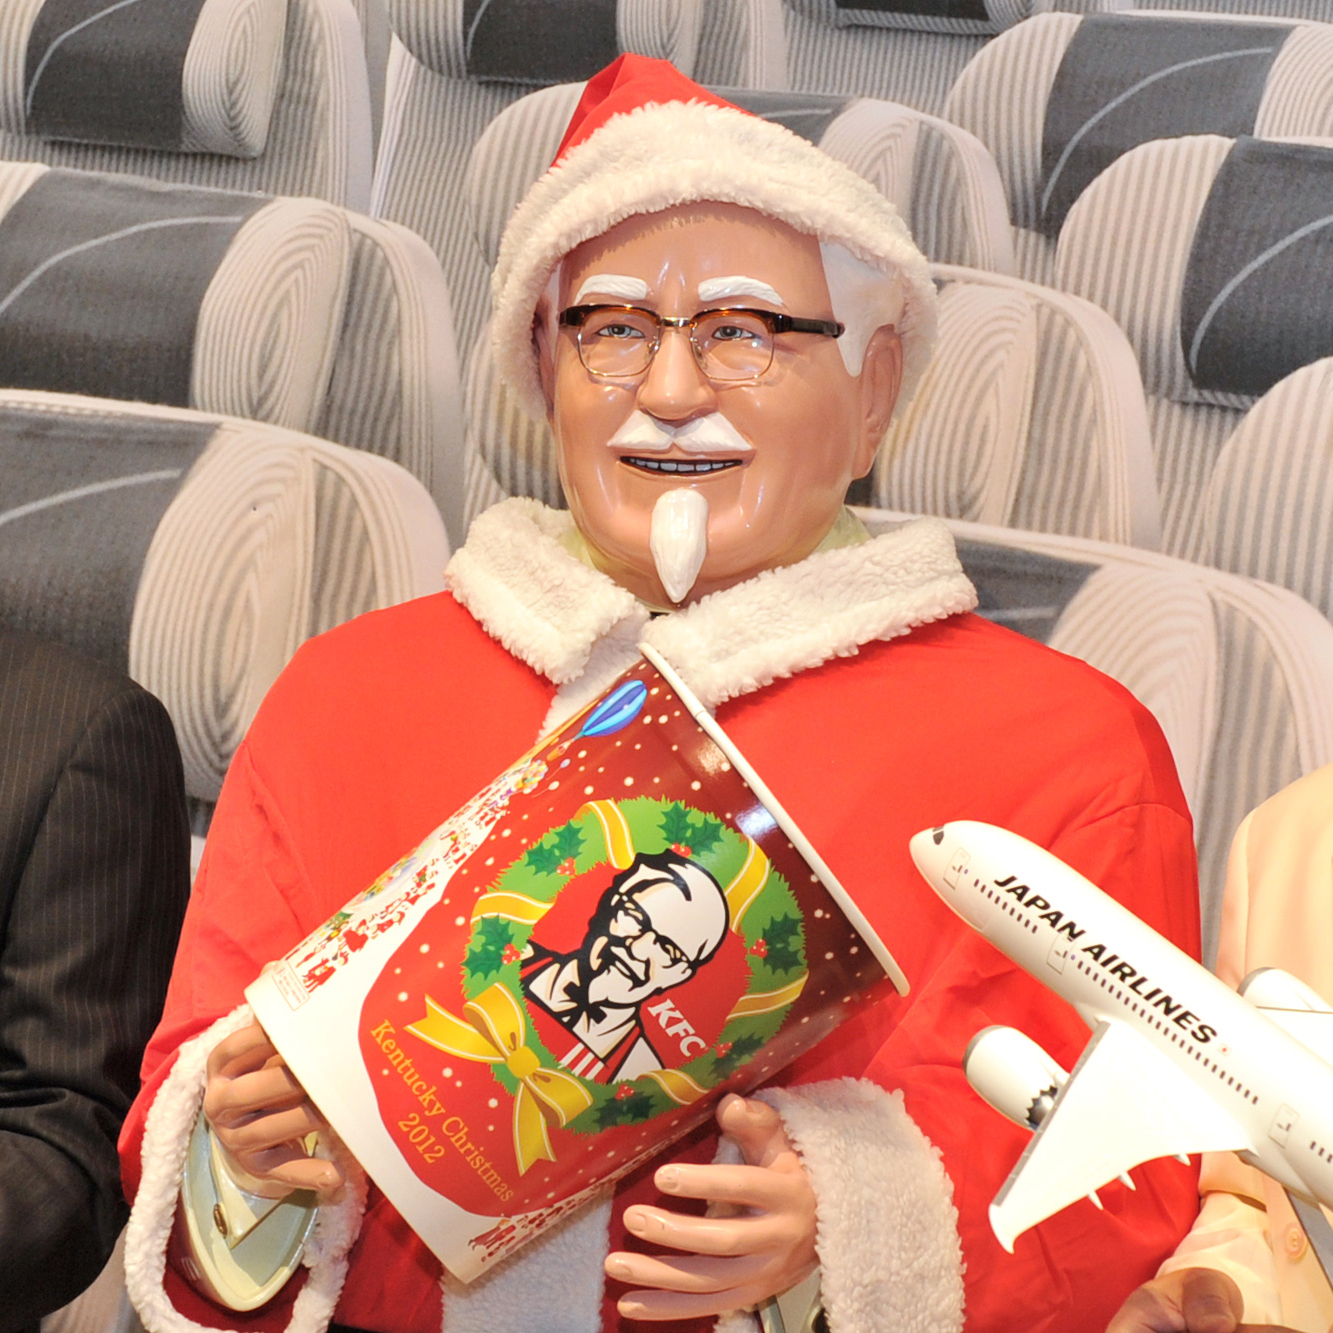 Colonel Sanders decked out for Christmas in Japan